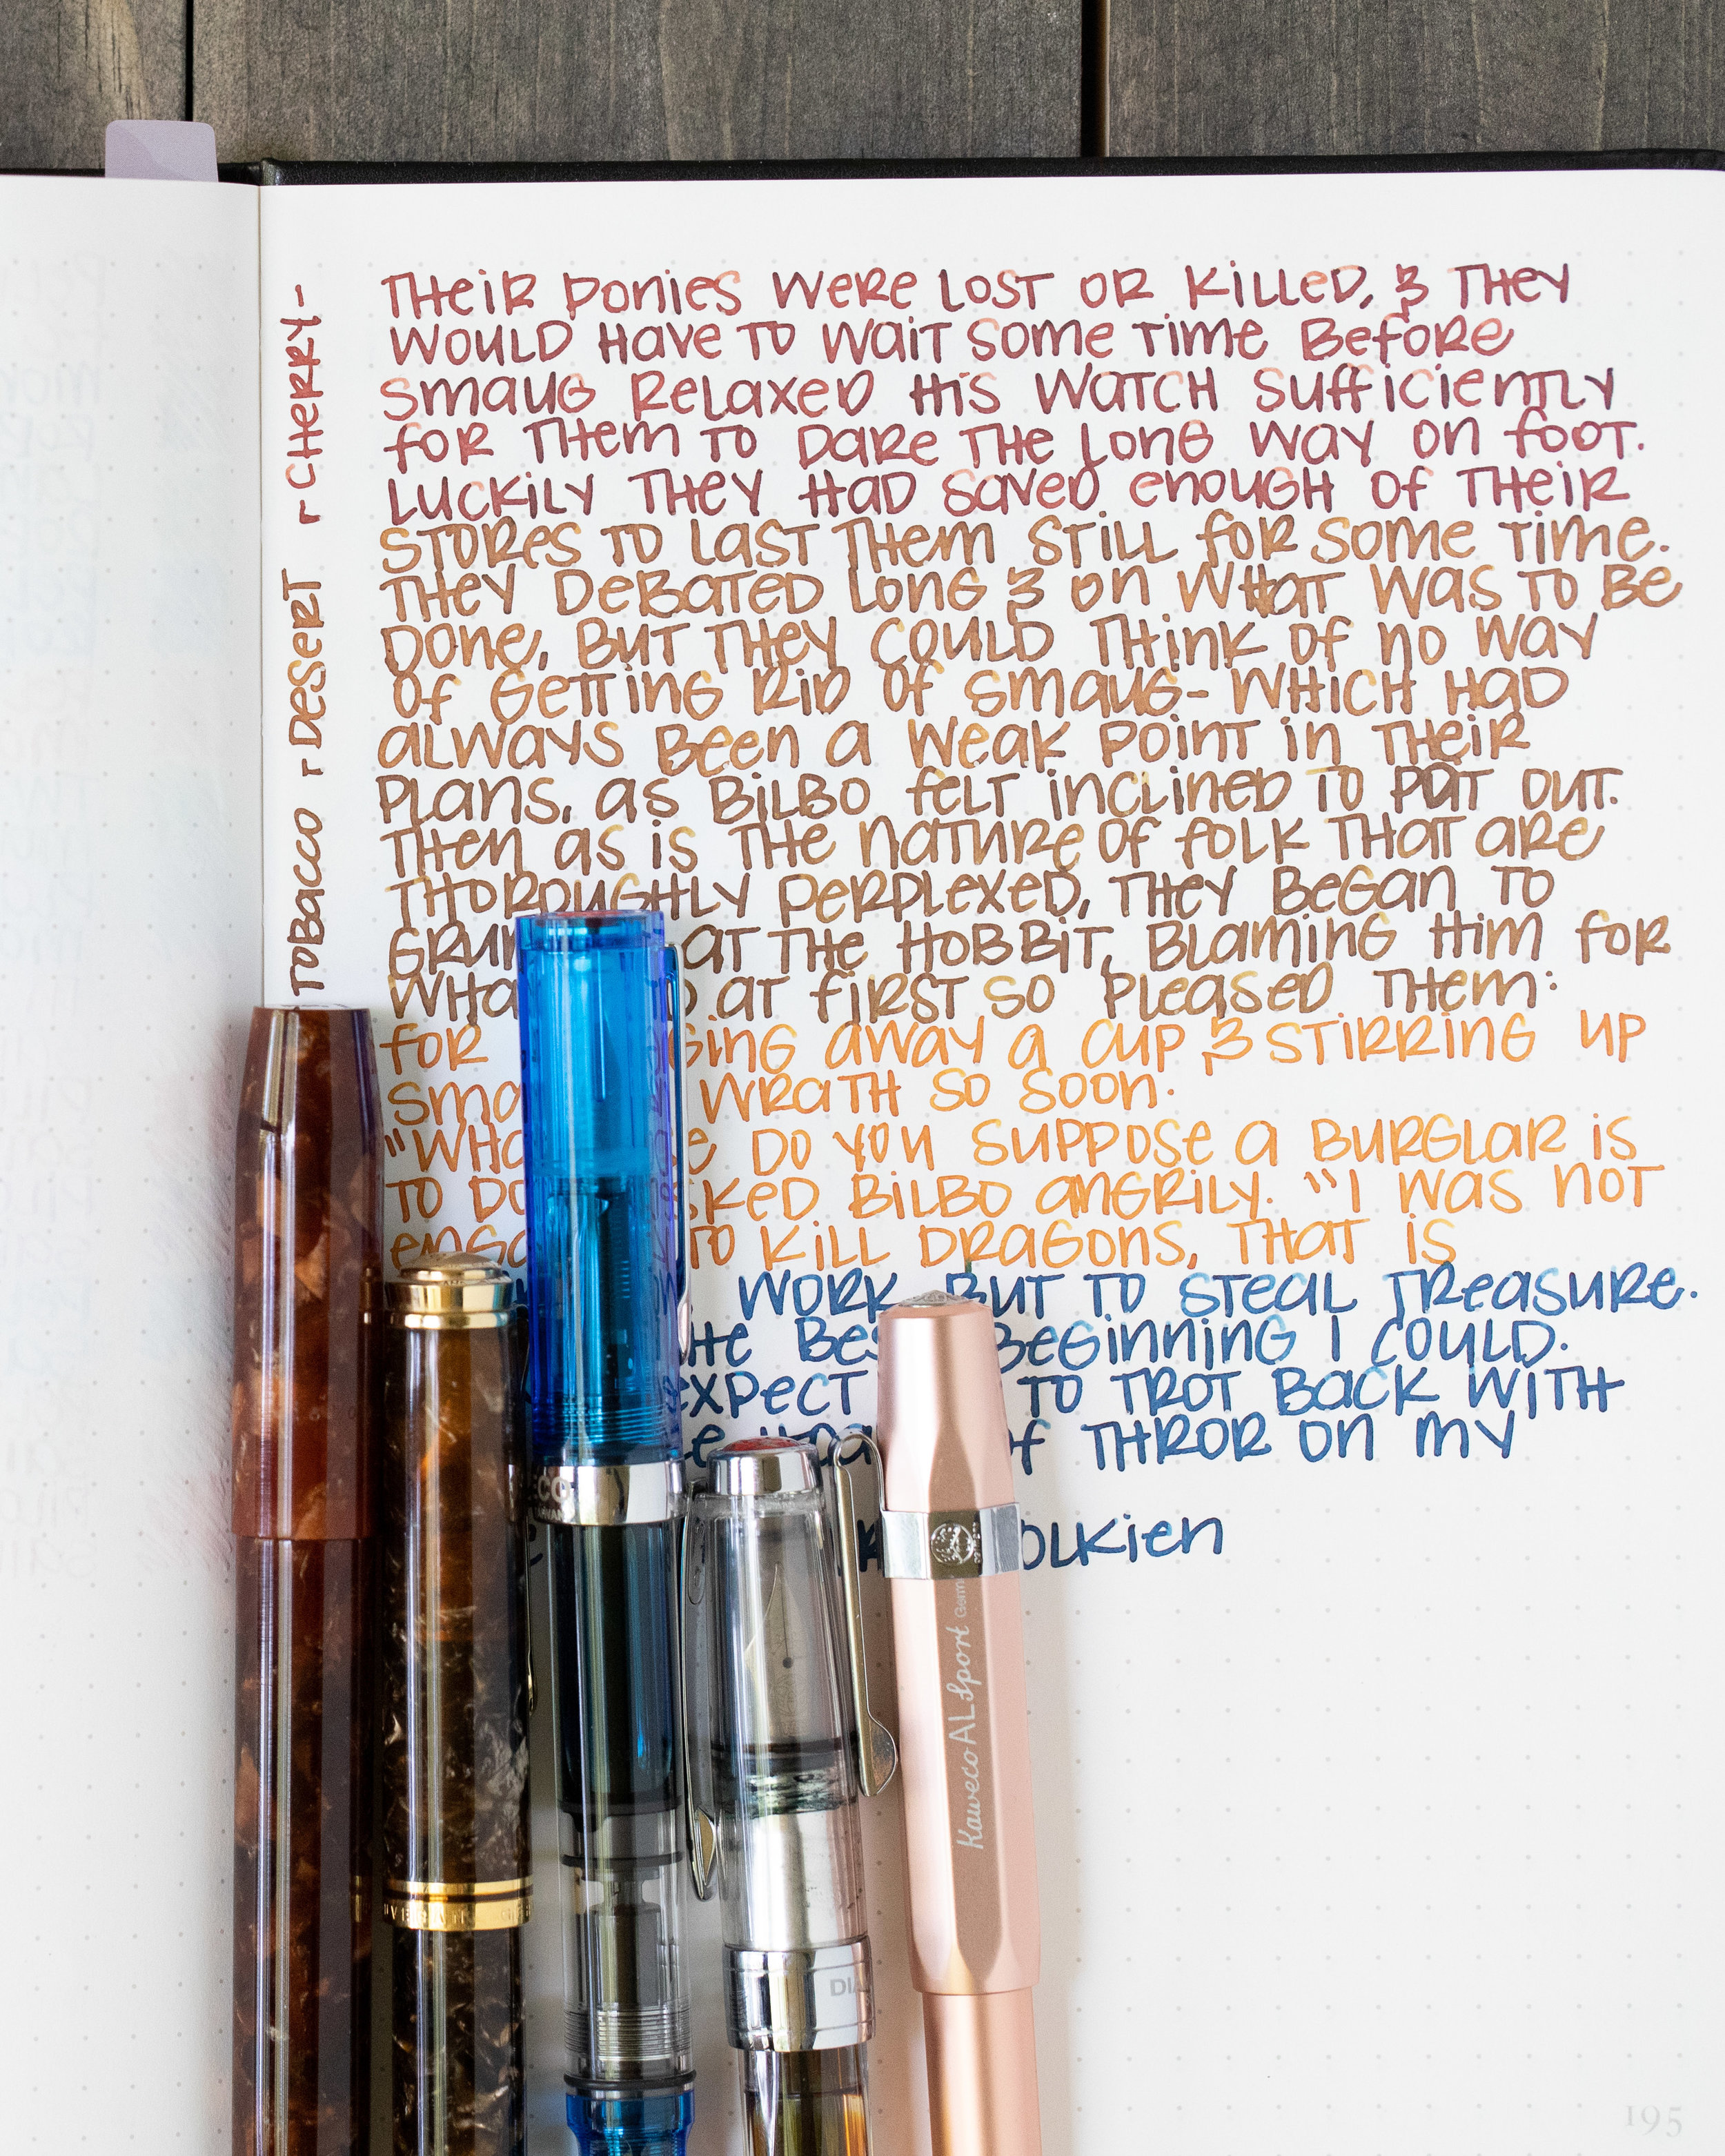 Longer writing: - I used: Franklin-Christoph 46 Autumn Oak with a 14K fine flex nib, a Pelikan M800 Renaissance Brown with a medium nib, a TWSBI Eco Transparent Blue with a medium nib, a TWSBI 580 AL medium nib, and a Kaweco Al-sport Rose Gold with a broad nib on a Bond Travel Gear Notebook. All of the inks had an average flow.